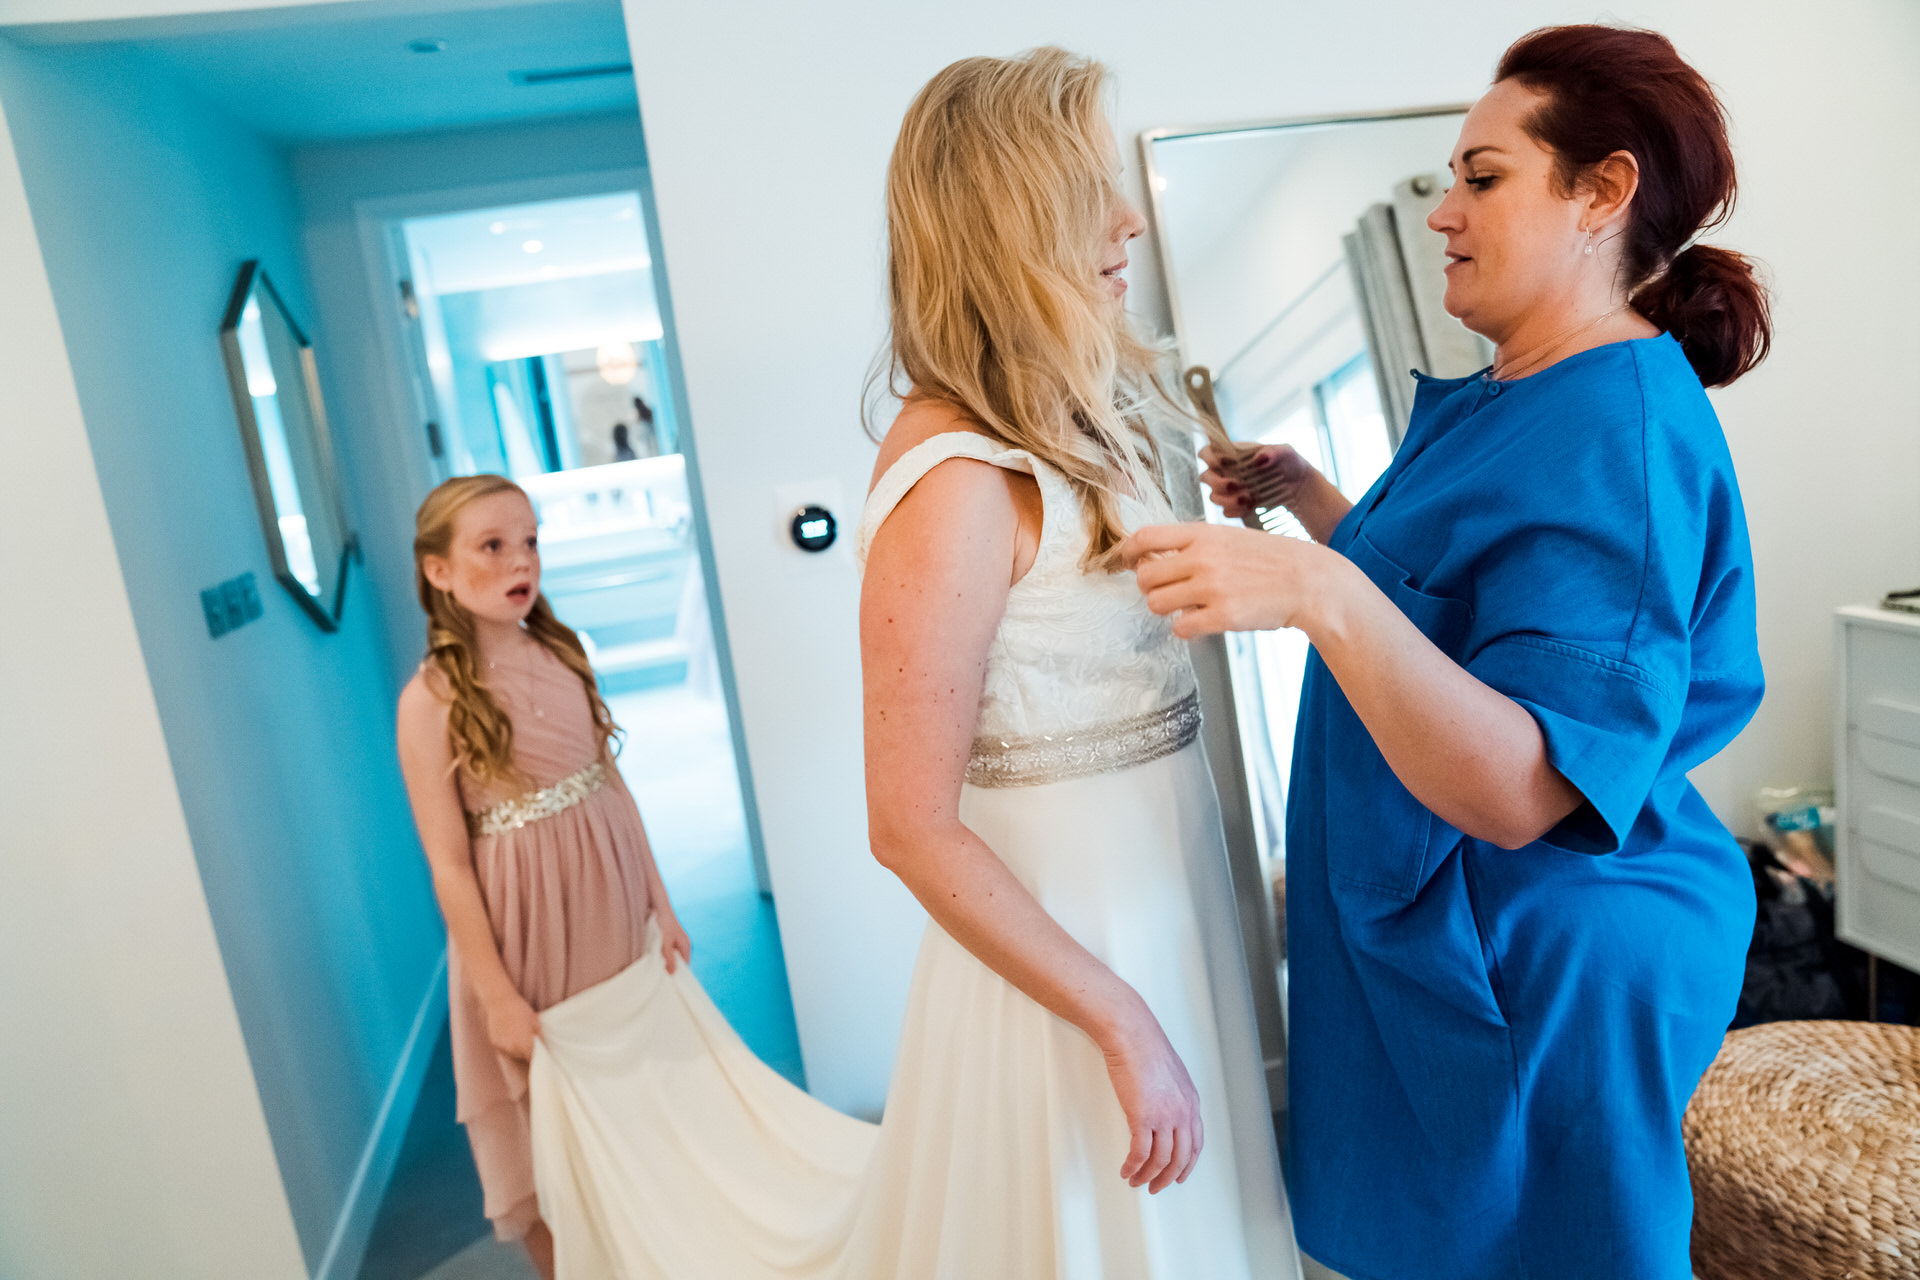 Dubai Villa, UAE At-Home Elopement Photographer | The bride's daughter helping her mother get ready